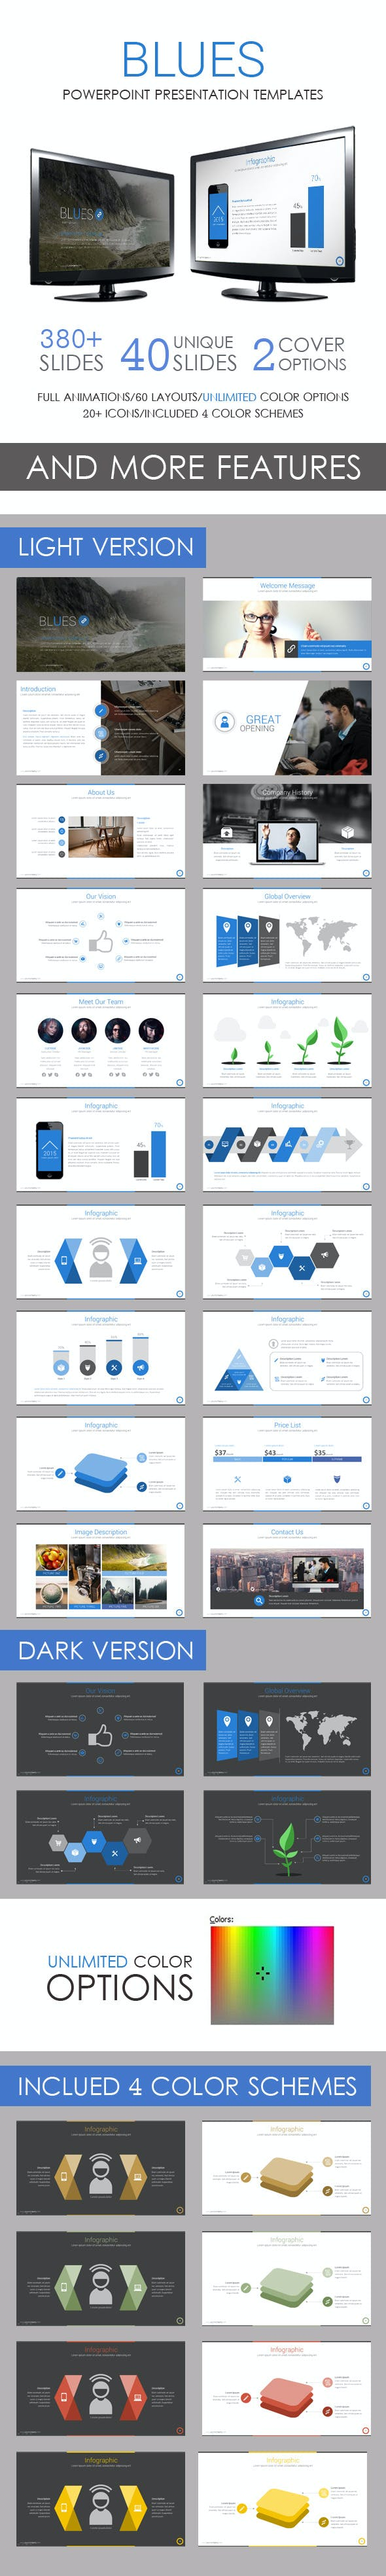 12 Best PowerPoint Templates